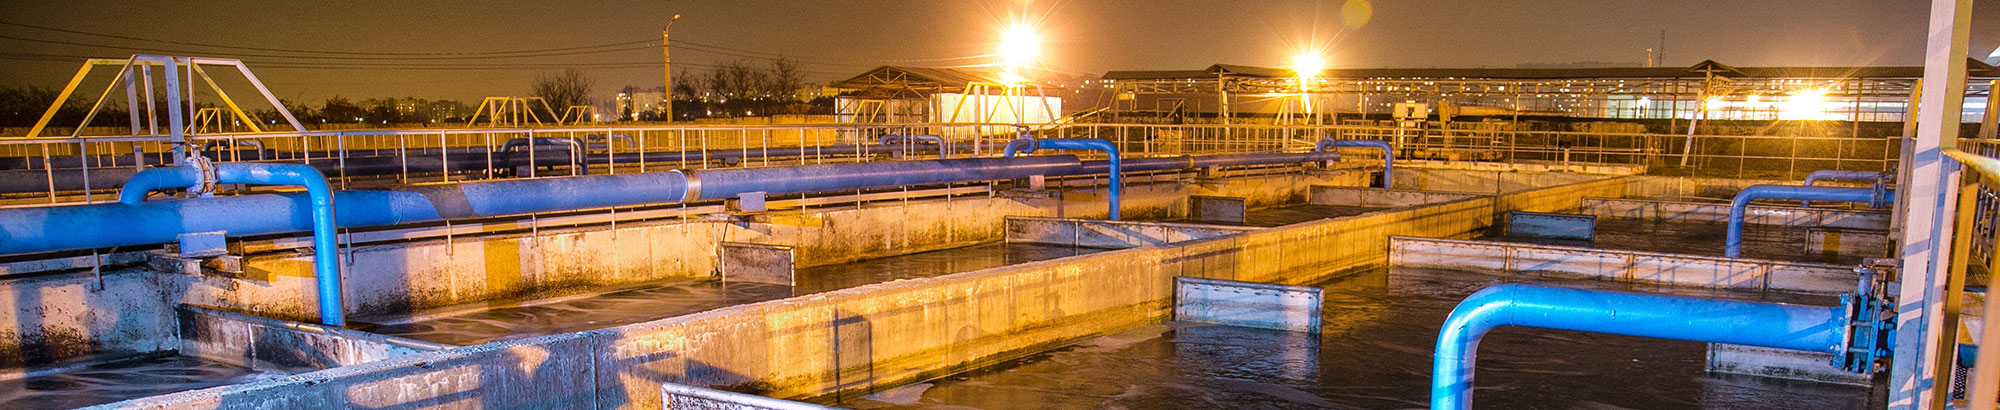 Waste Water At Night banner